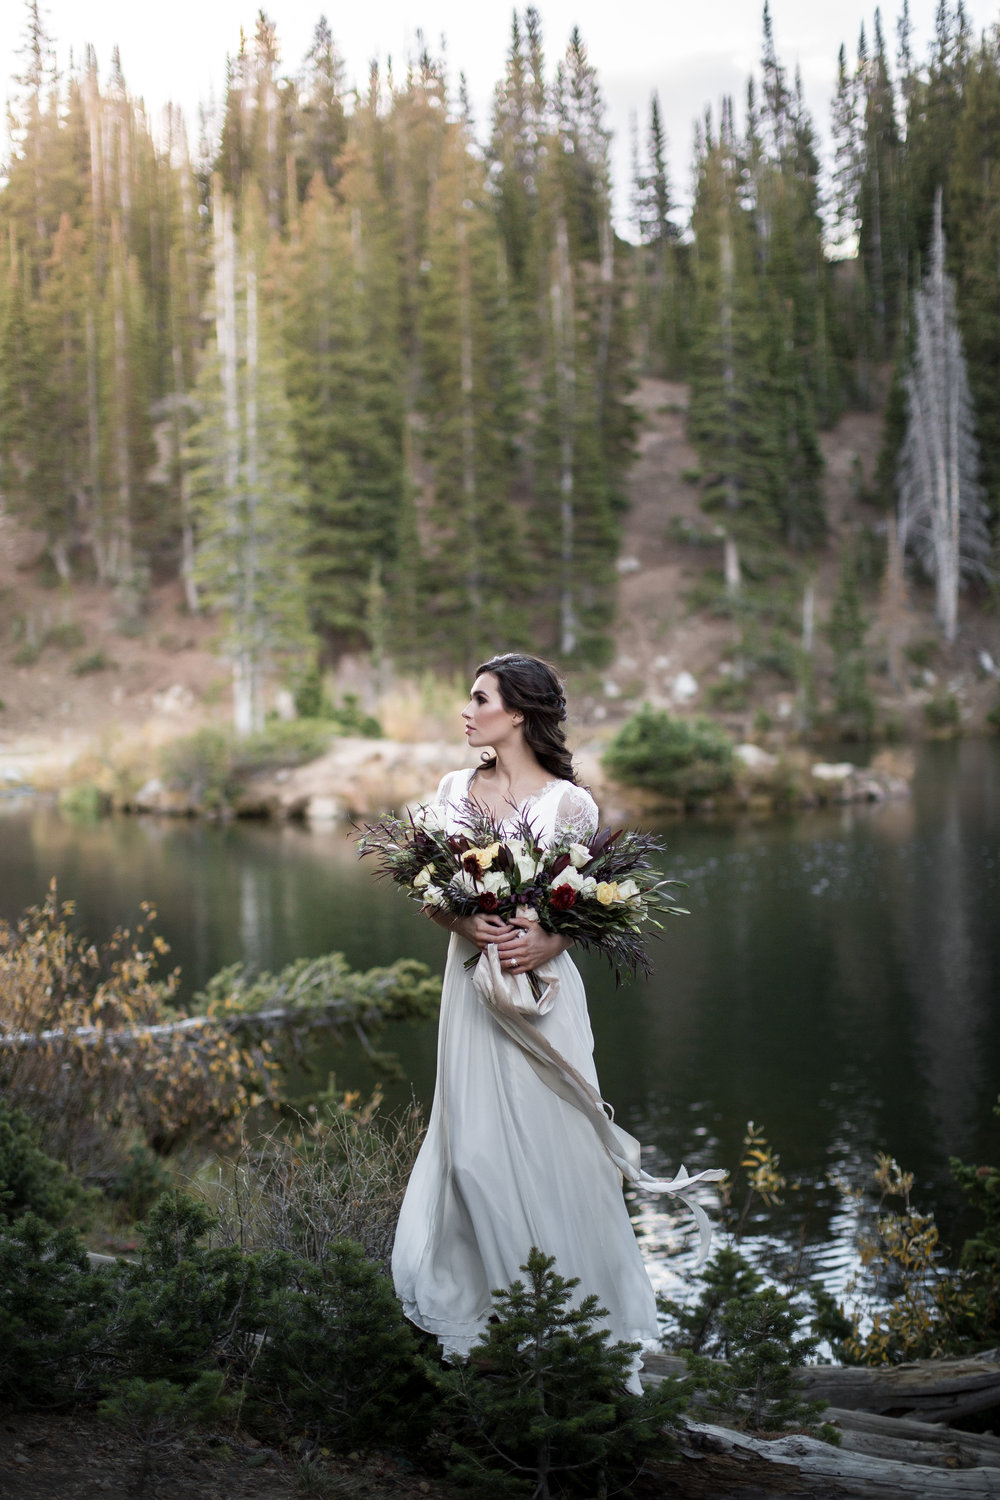 UtahValleyBrideShootTR2016 (46 of 110).jpg